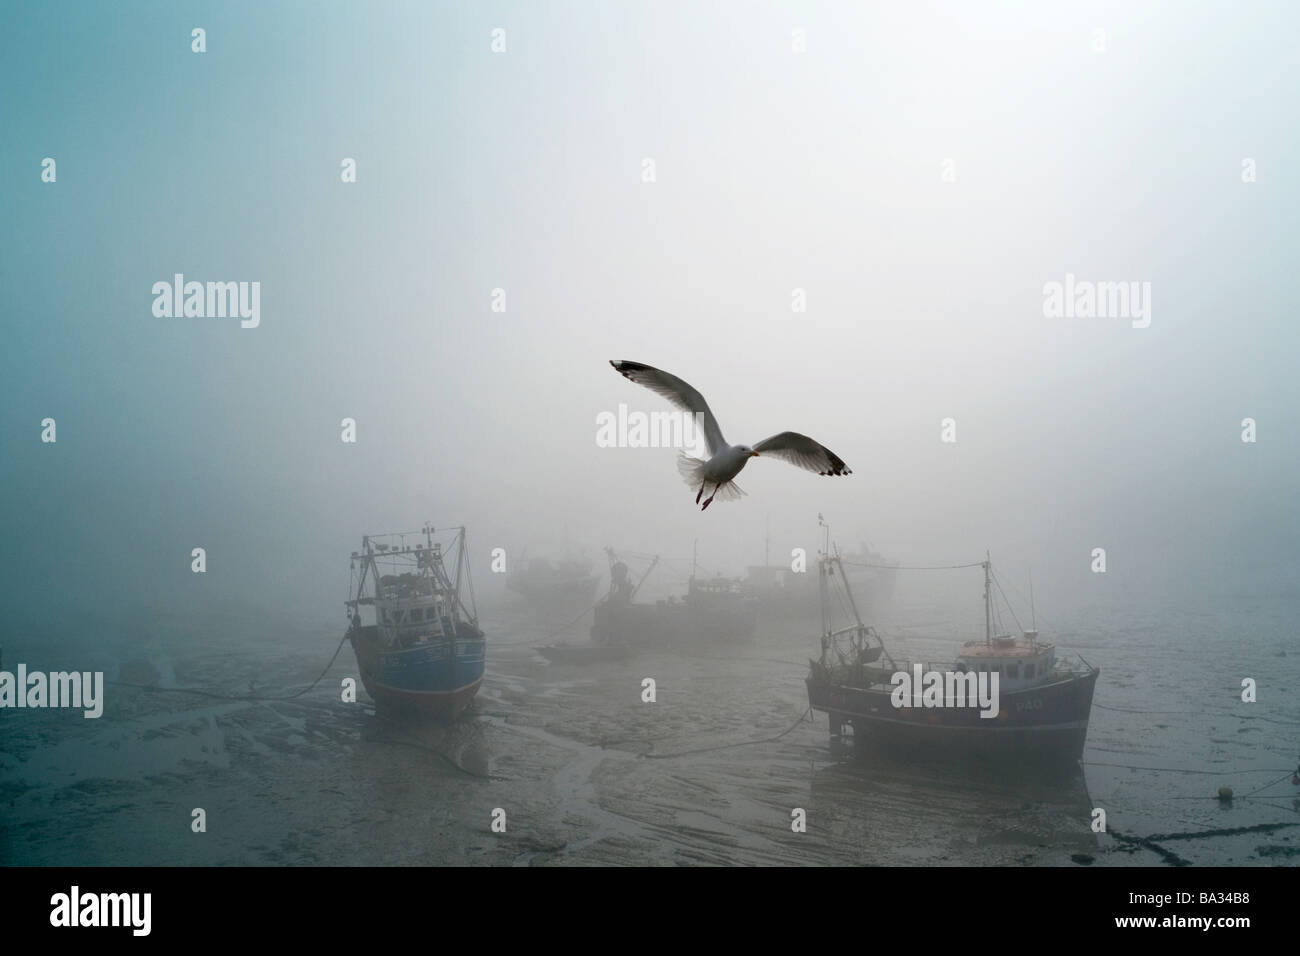 Fishing boats lie aground in sea fog - Stock Image